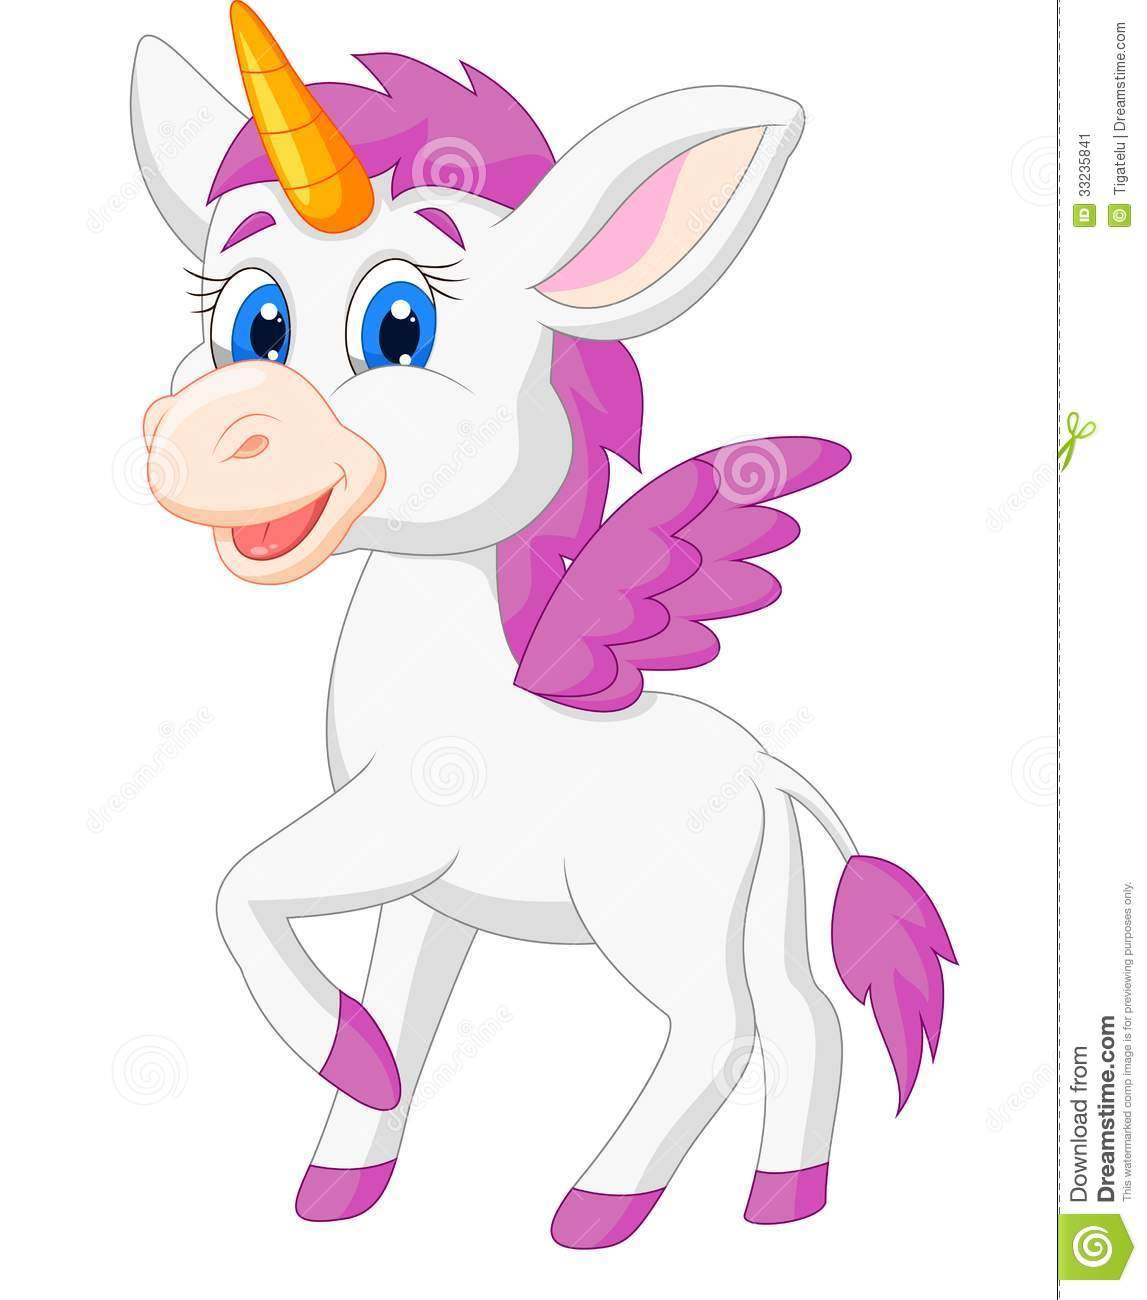 Cute Baby Unicorn Cartoon | www.pixshark.com - Images ...